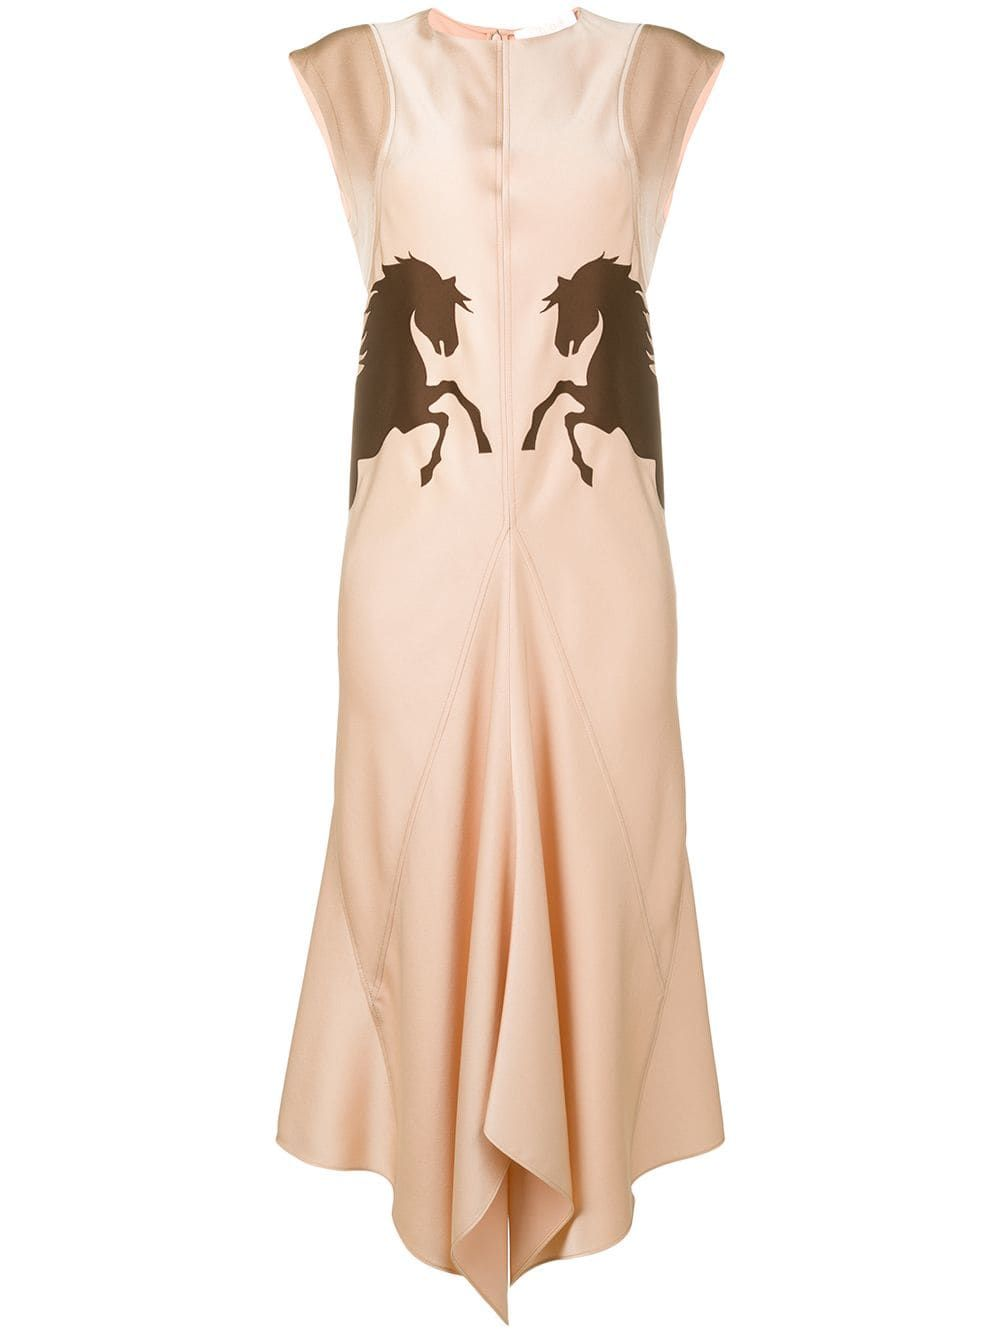 1c98e3d6cf Chloé Horse dress - Pink in 2019 | Products | Dresses, Pink dress ...